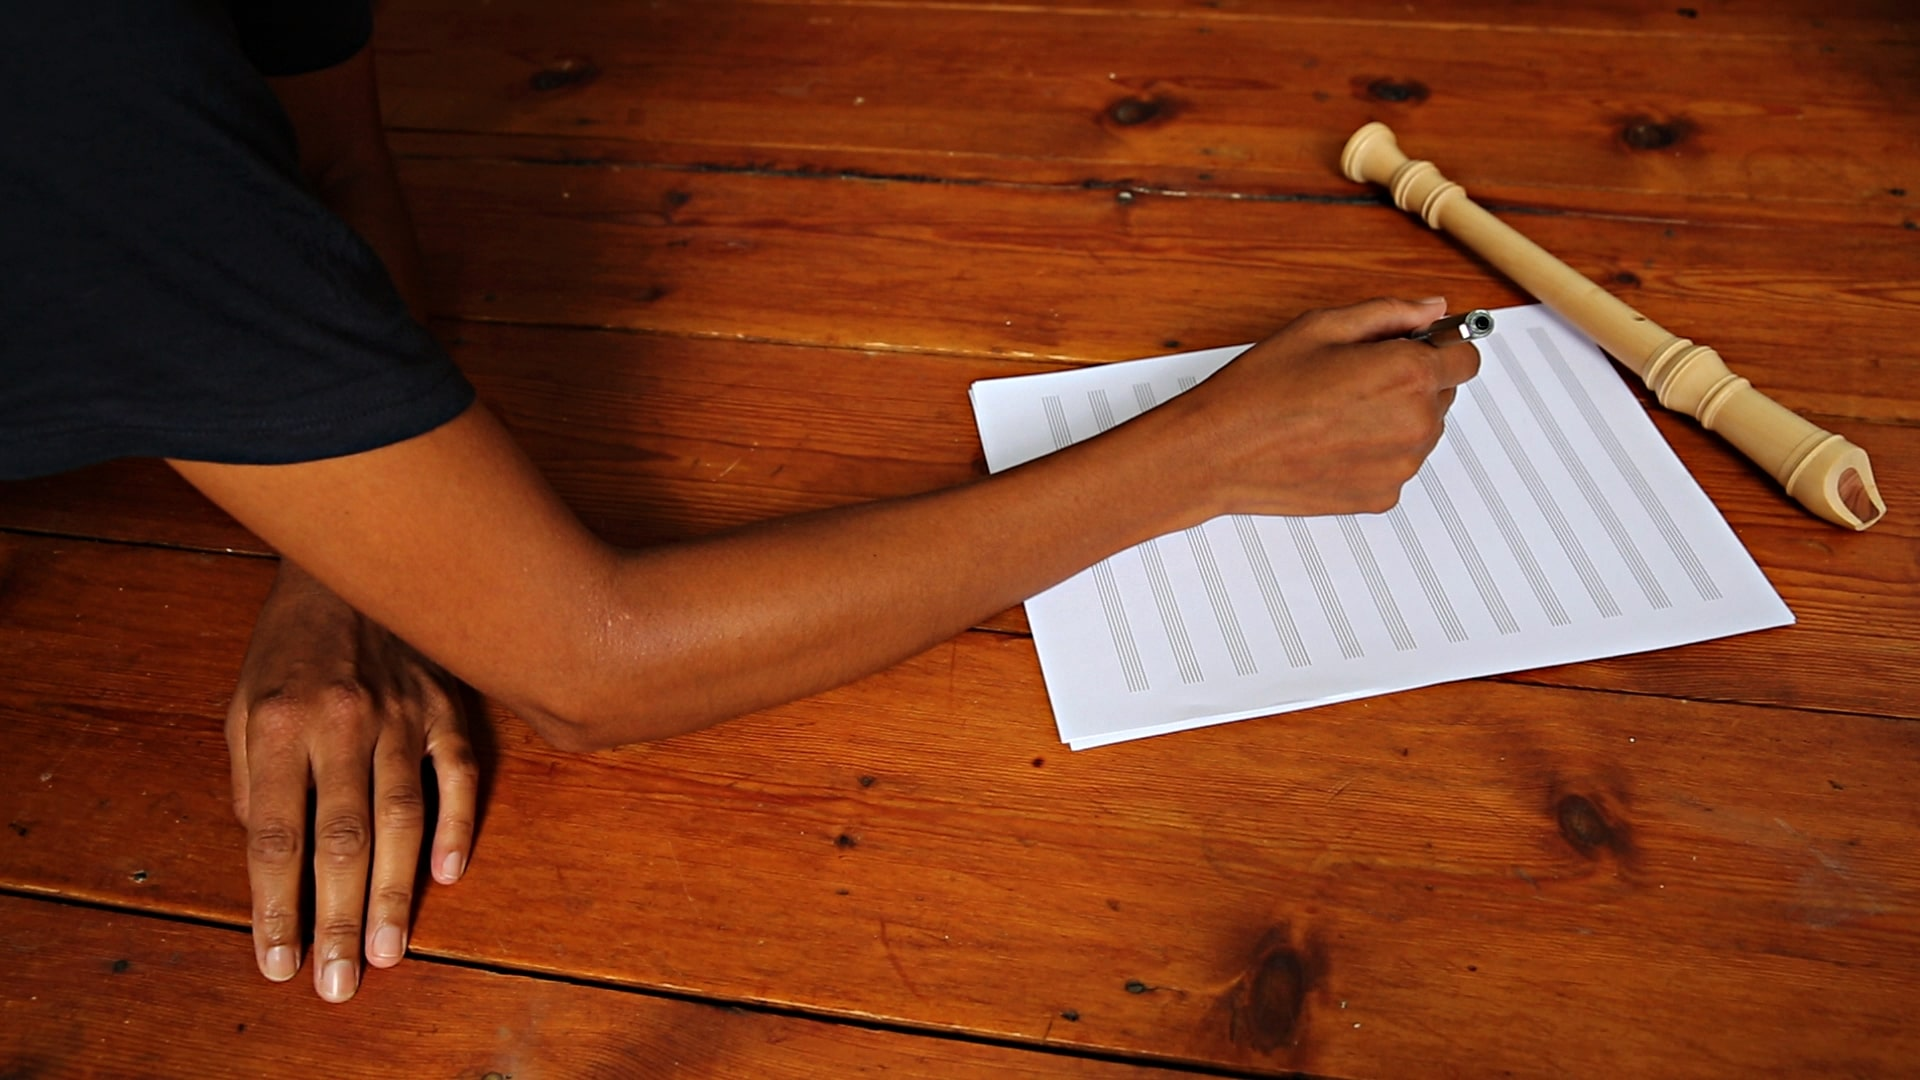 The Long Note by Helen Cammock, promotional image, woman's arm extends as she writes musical notes on a music sheet with a recorder sitting off centre, a warm wooden floor underneath her